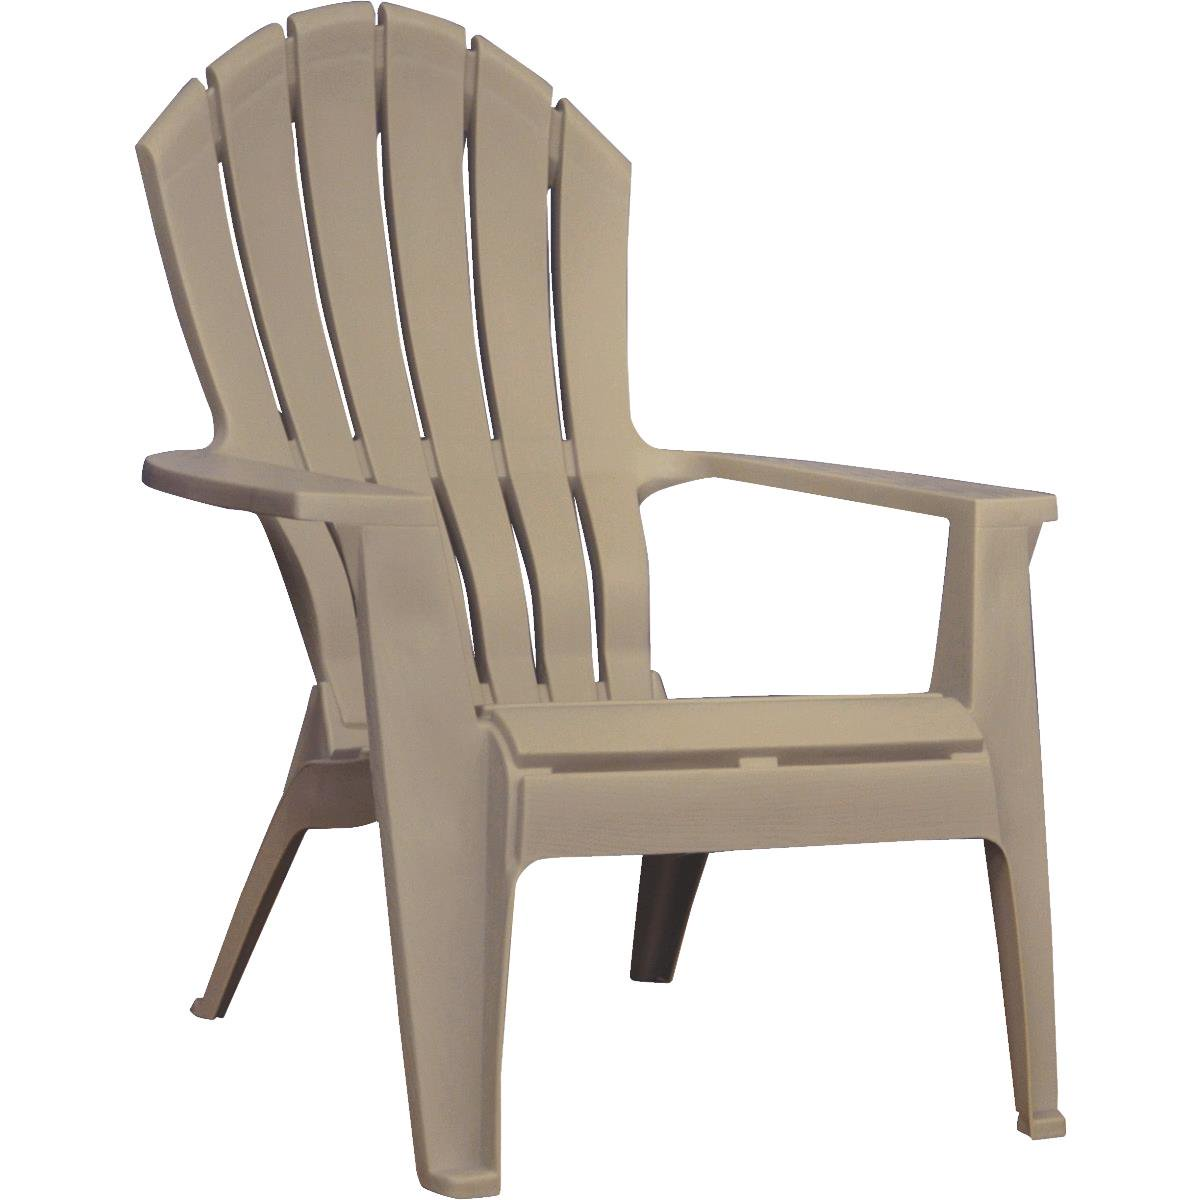 Adams RealComfort Ergonomic Adirondack Chair by Adams Mfg Co